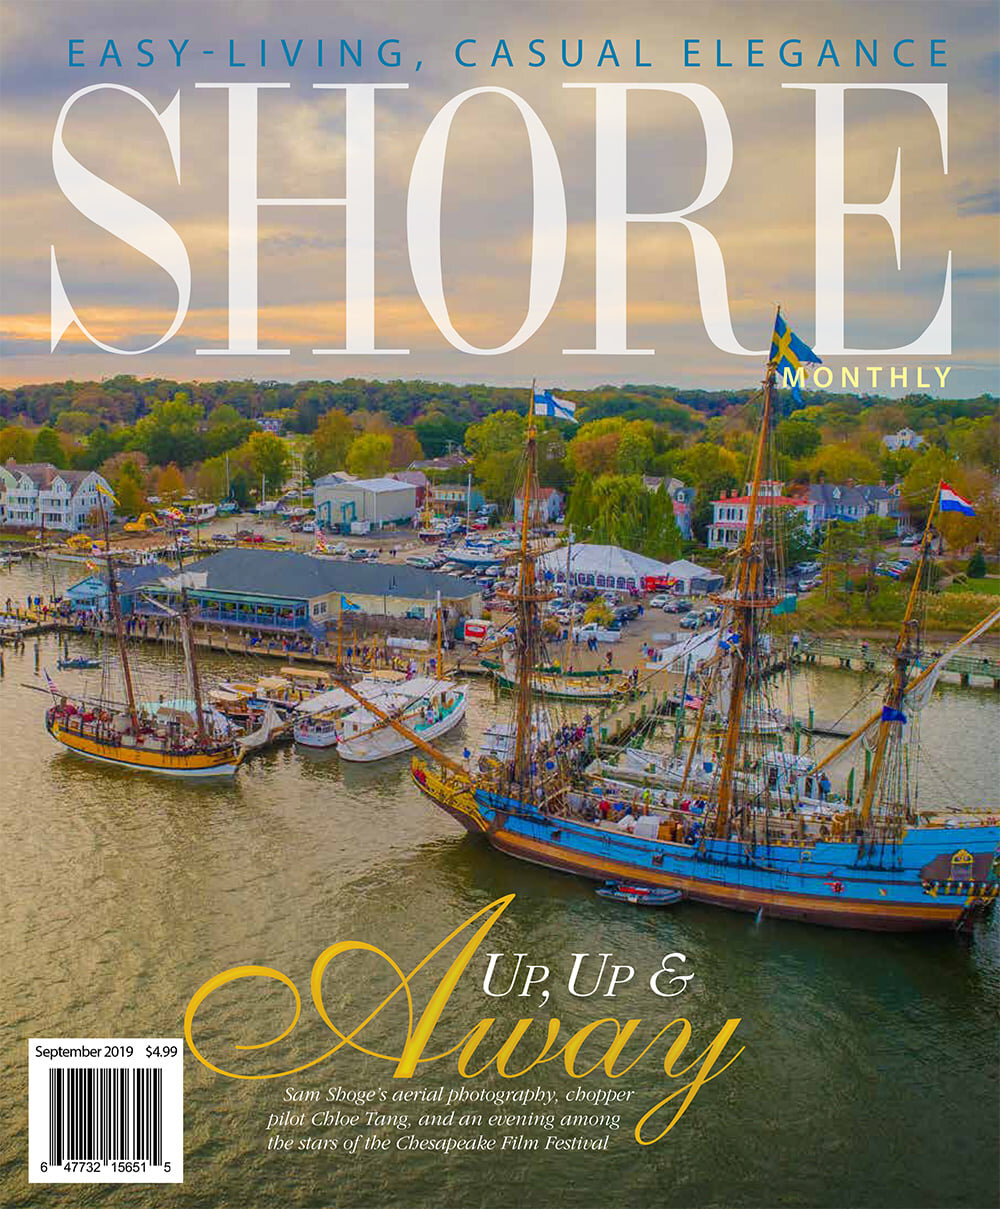 ShoreMonthlyCover.jpg